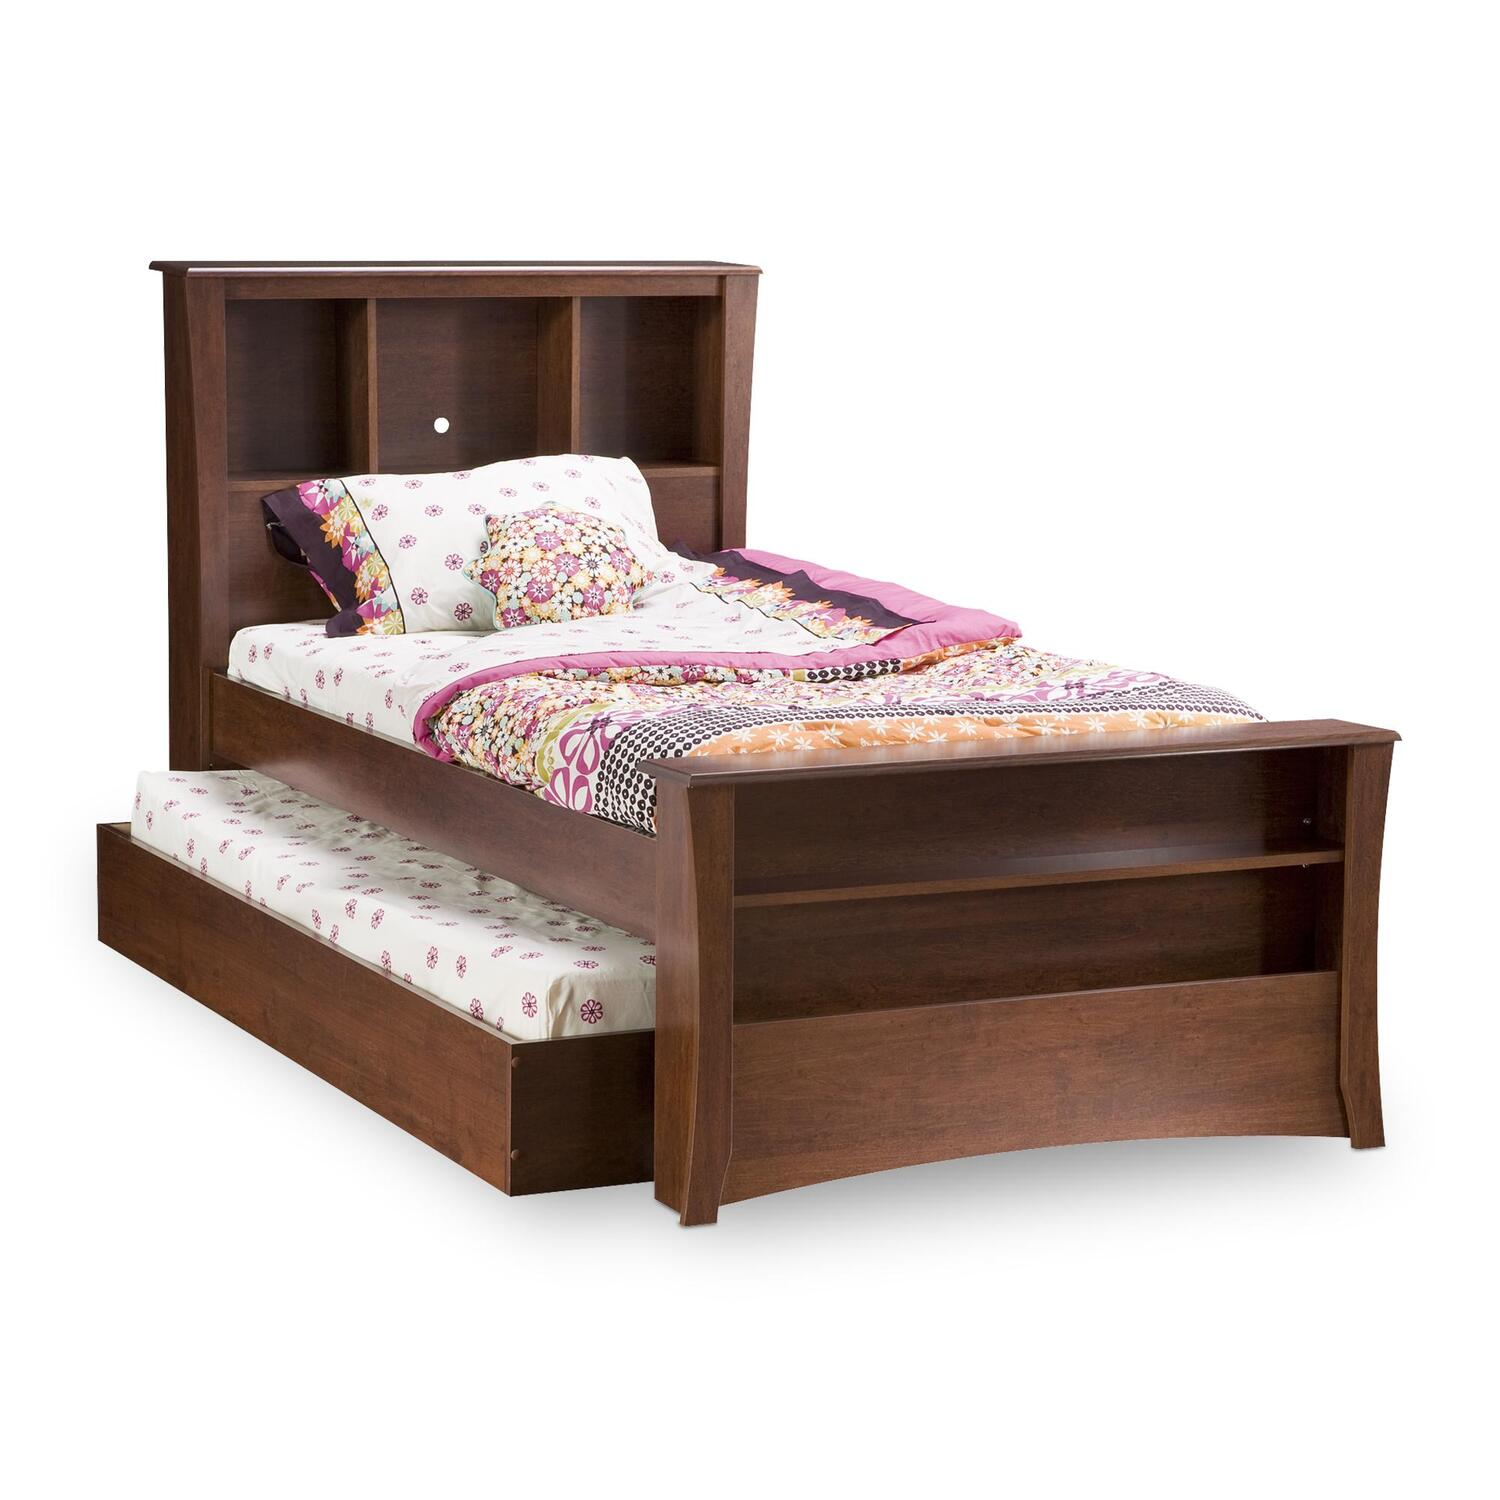 ... Queen Captains Bed Set. on under bed storage drawers plans for ashley